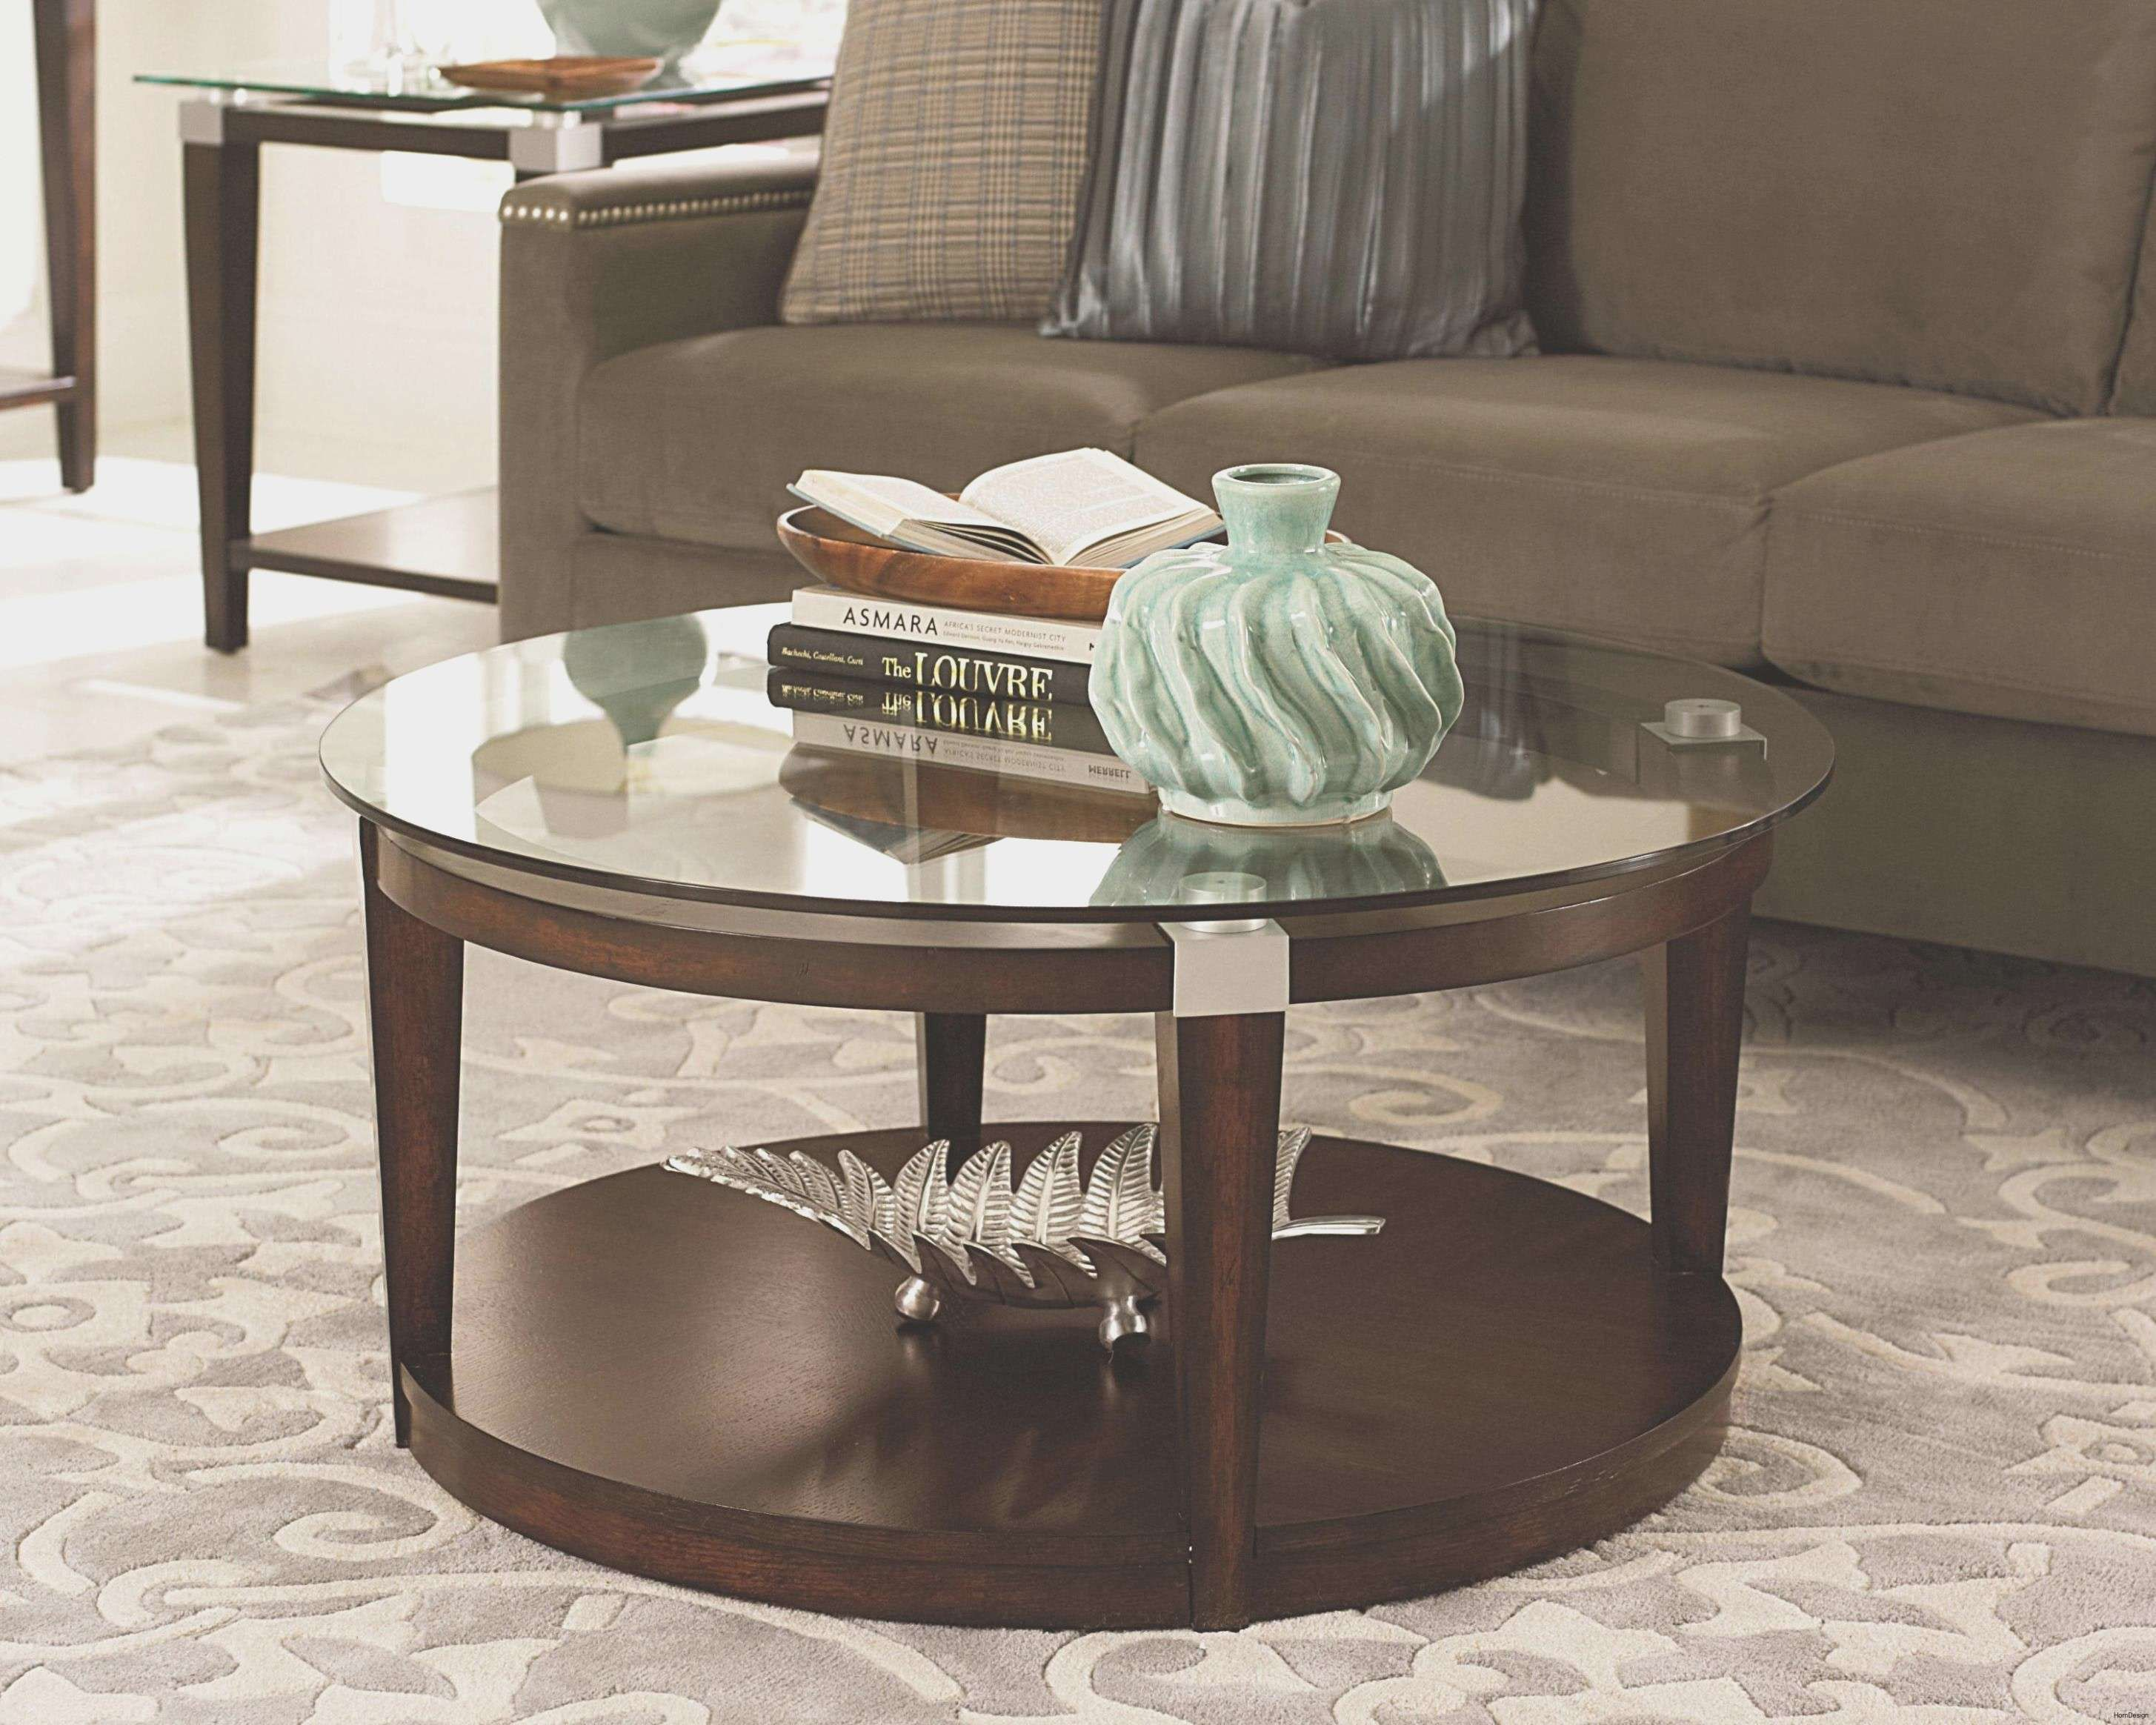 14 Decorating Ideas For Coffee And End Tables Pictures In 2020